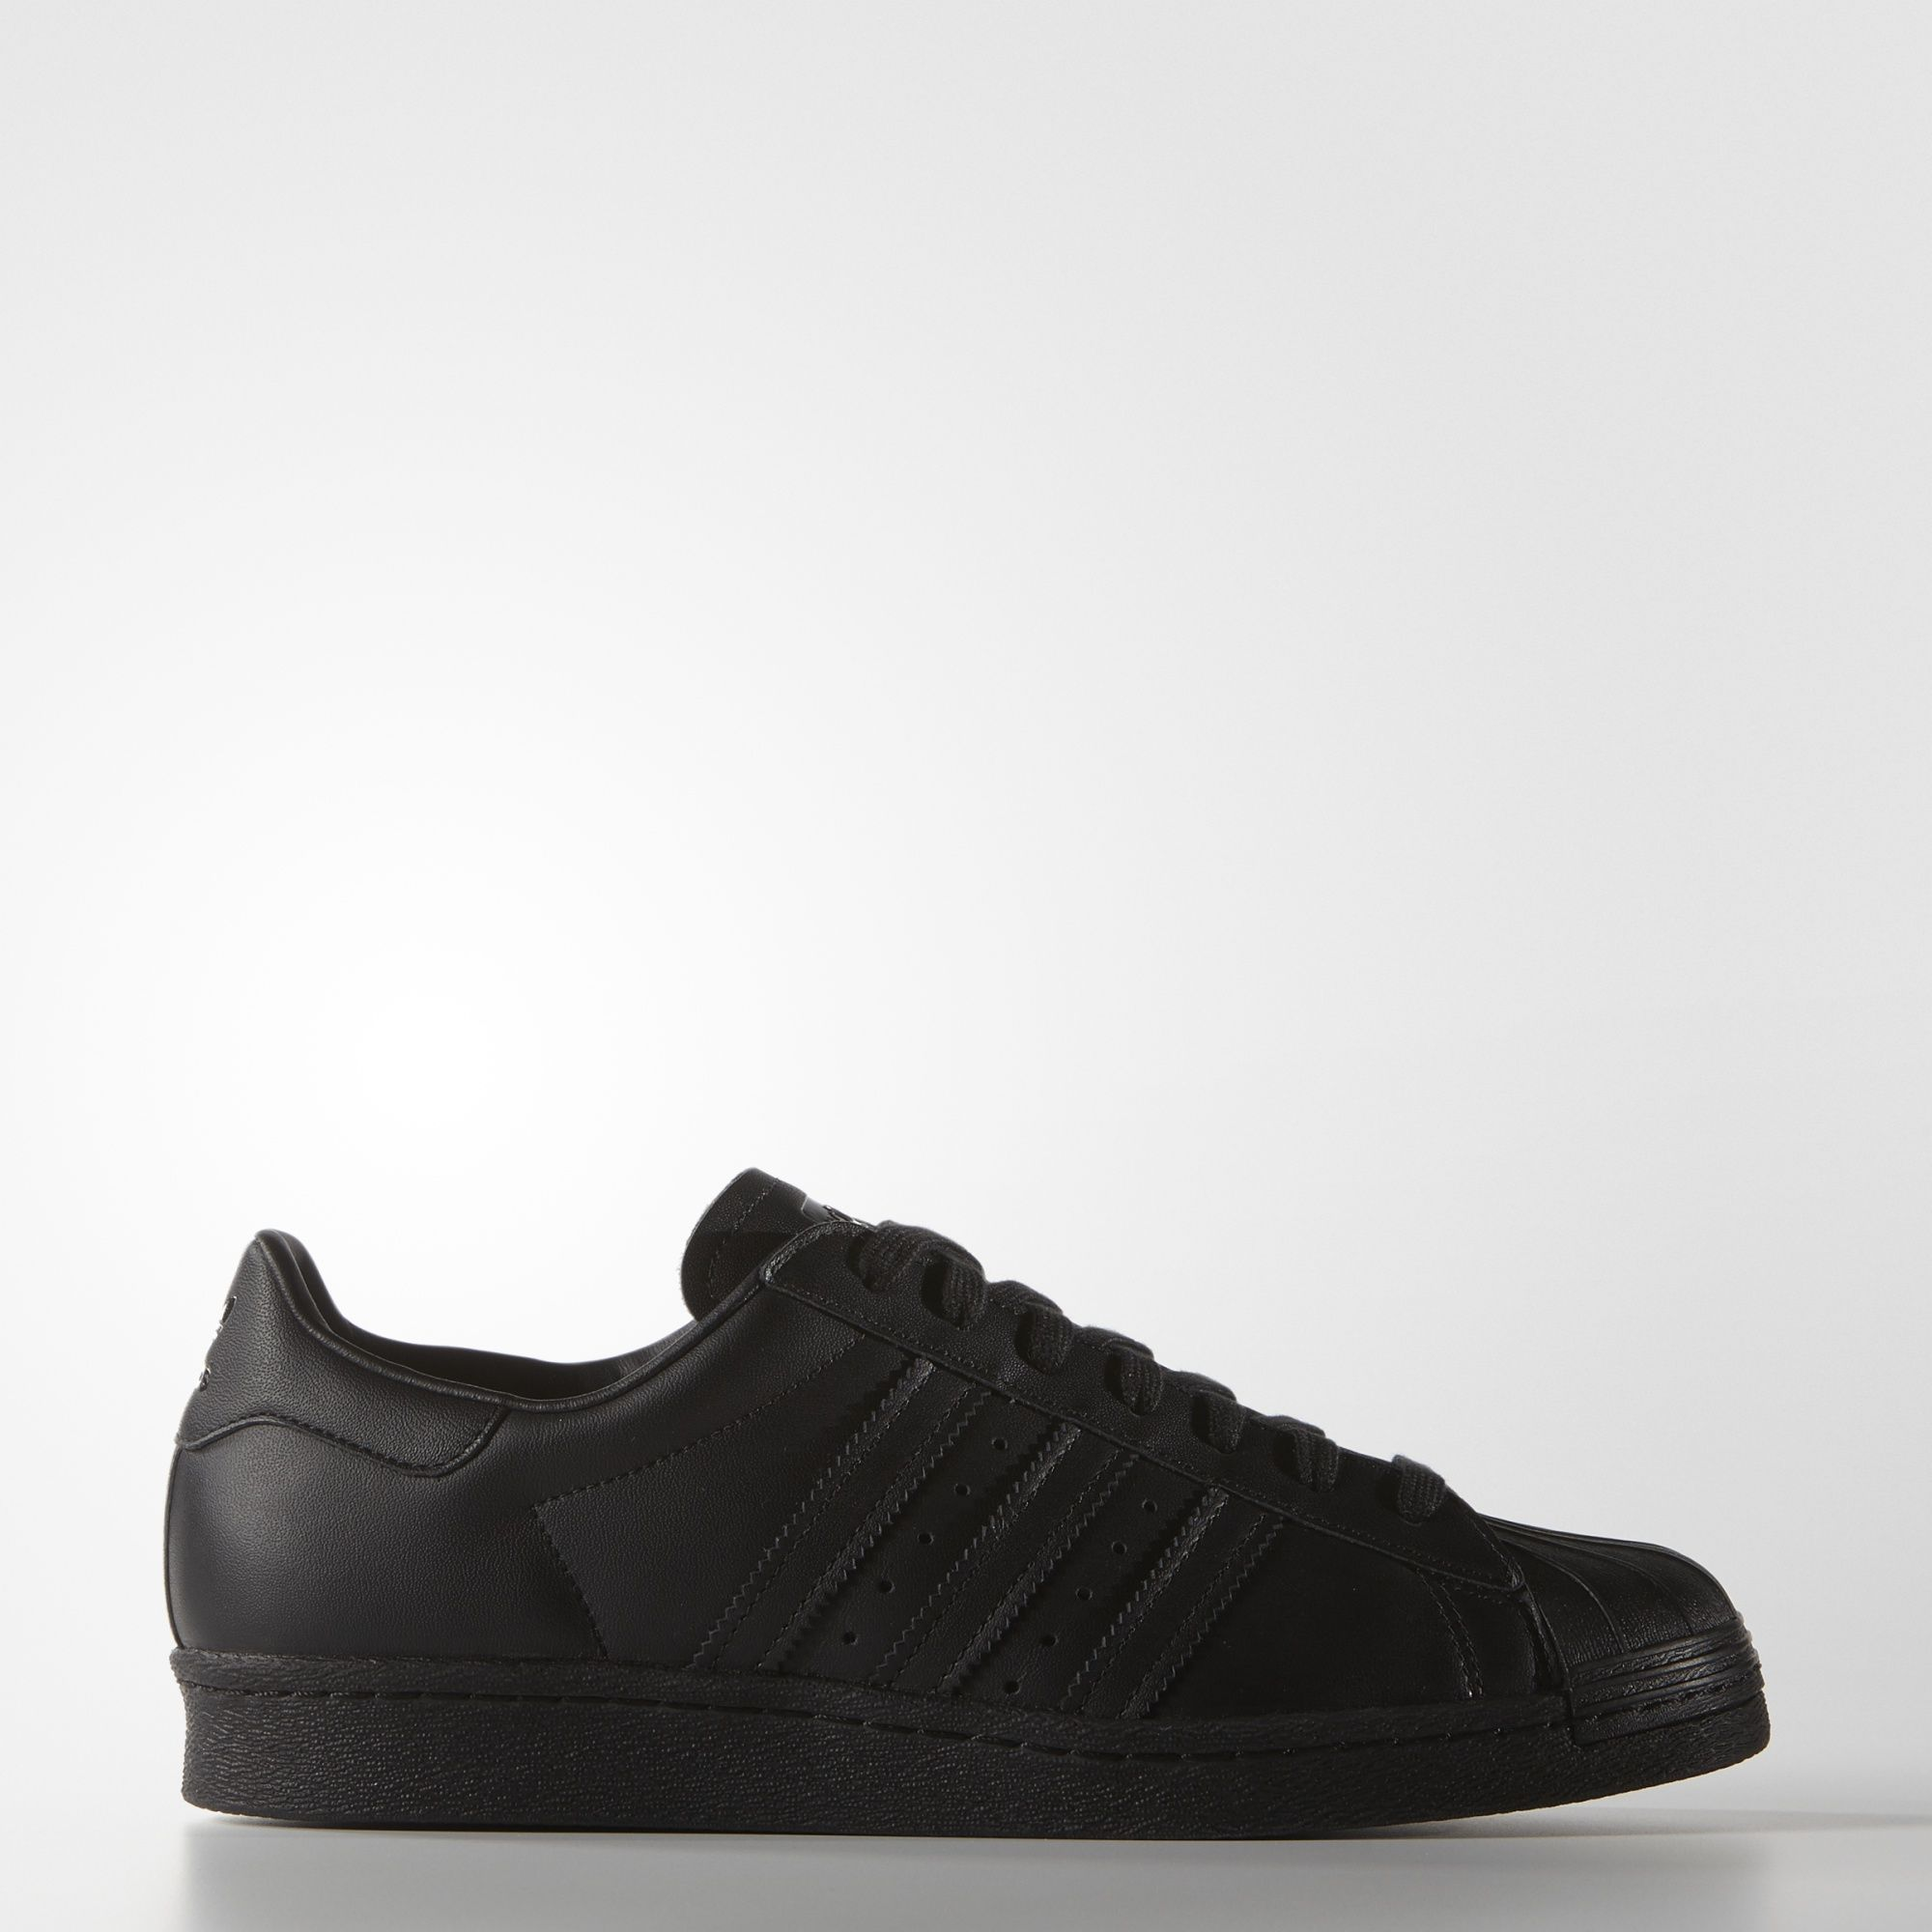 adidas Superstar '80s Shoes | 80s shoes, Superstars shoes